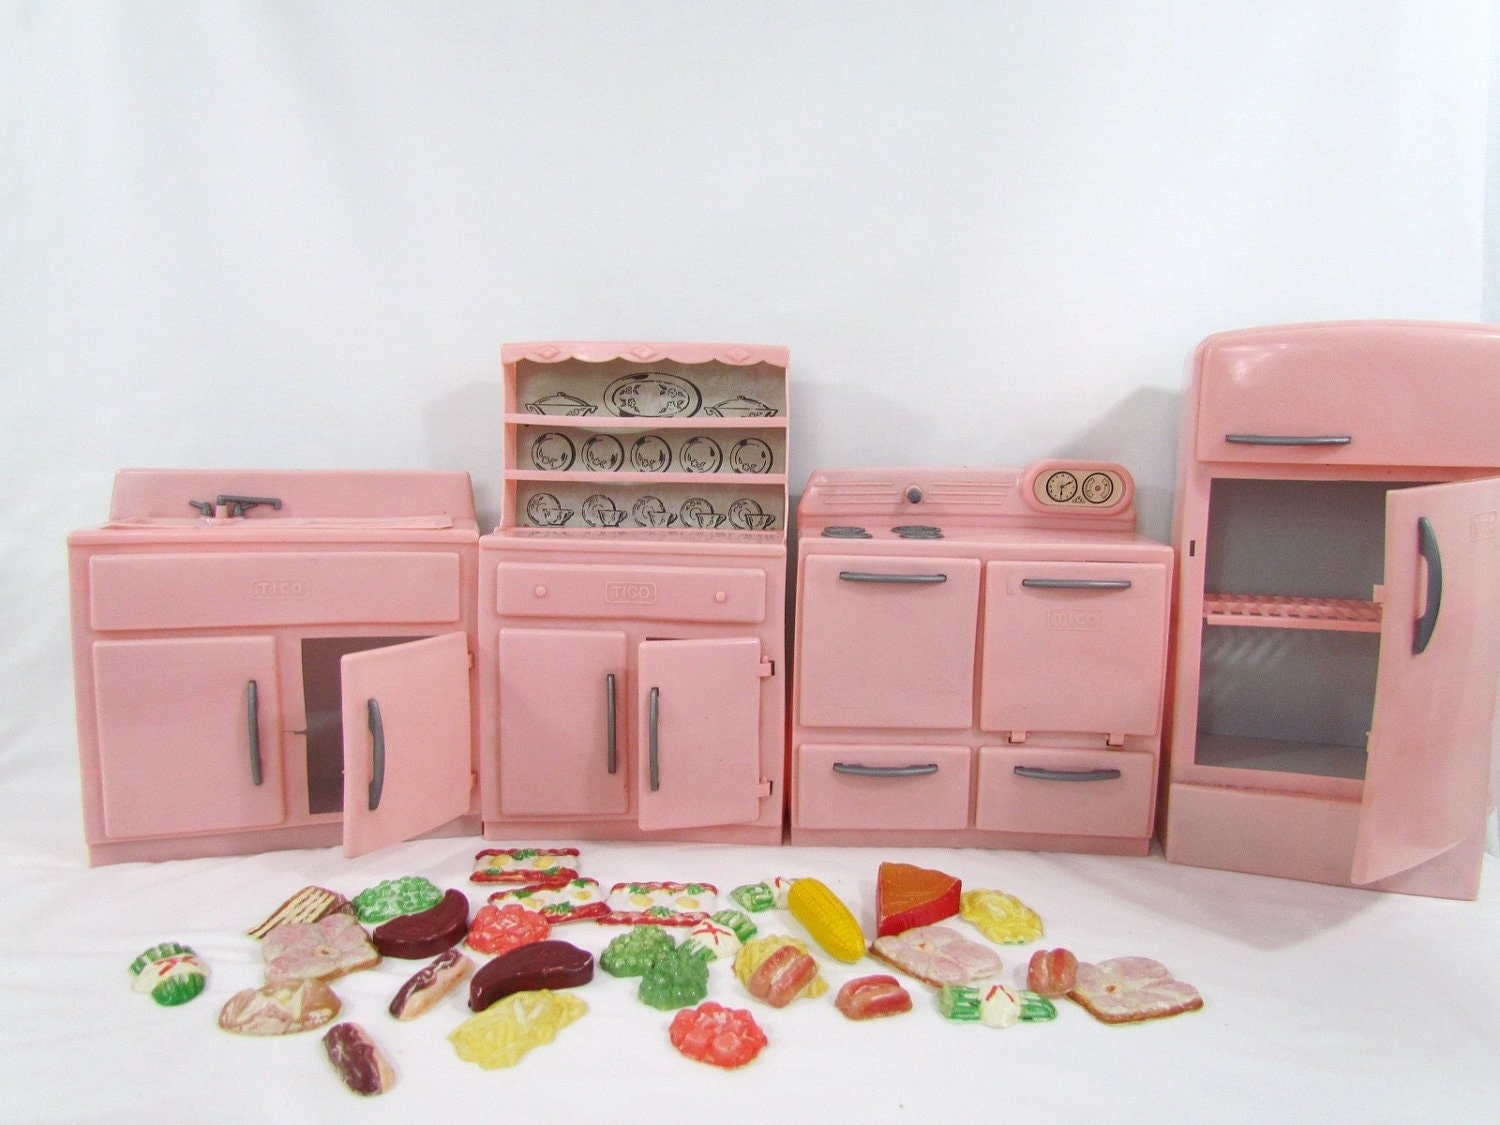 Tico vintage kitchen set with food plastic chldren 39 s toy for Kitchen set vintage